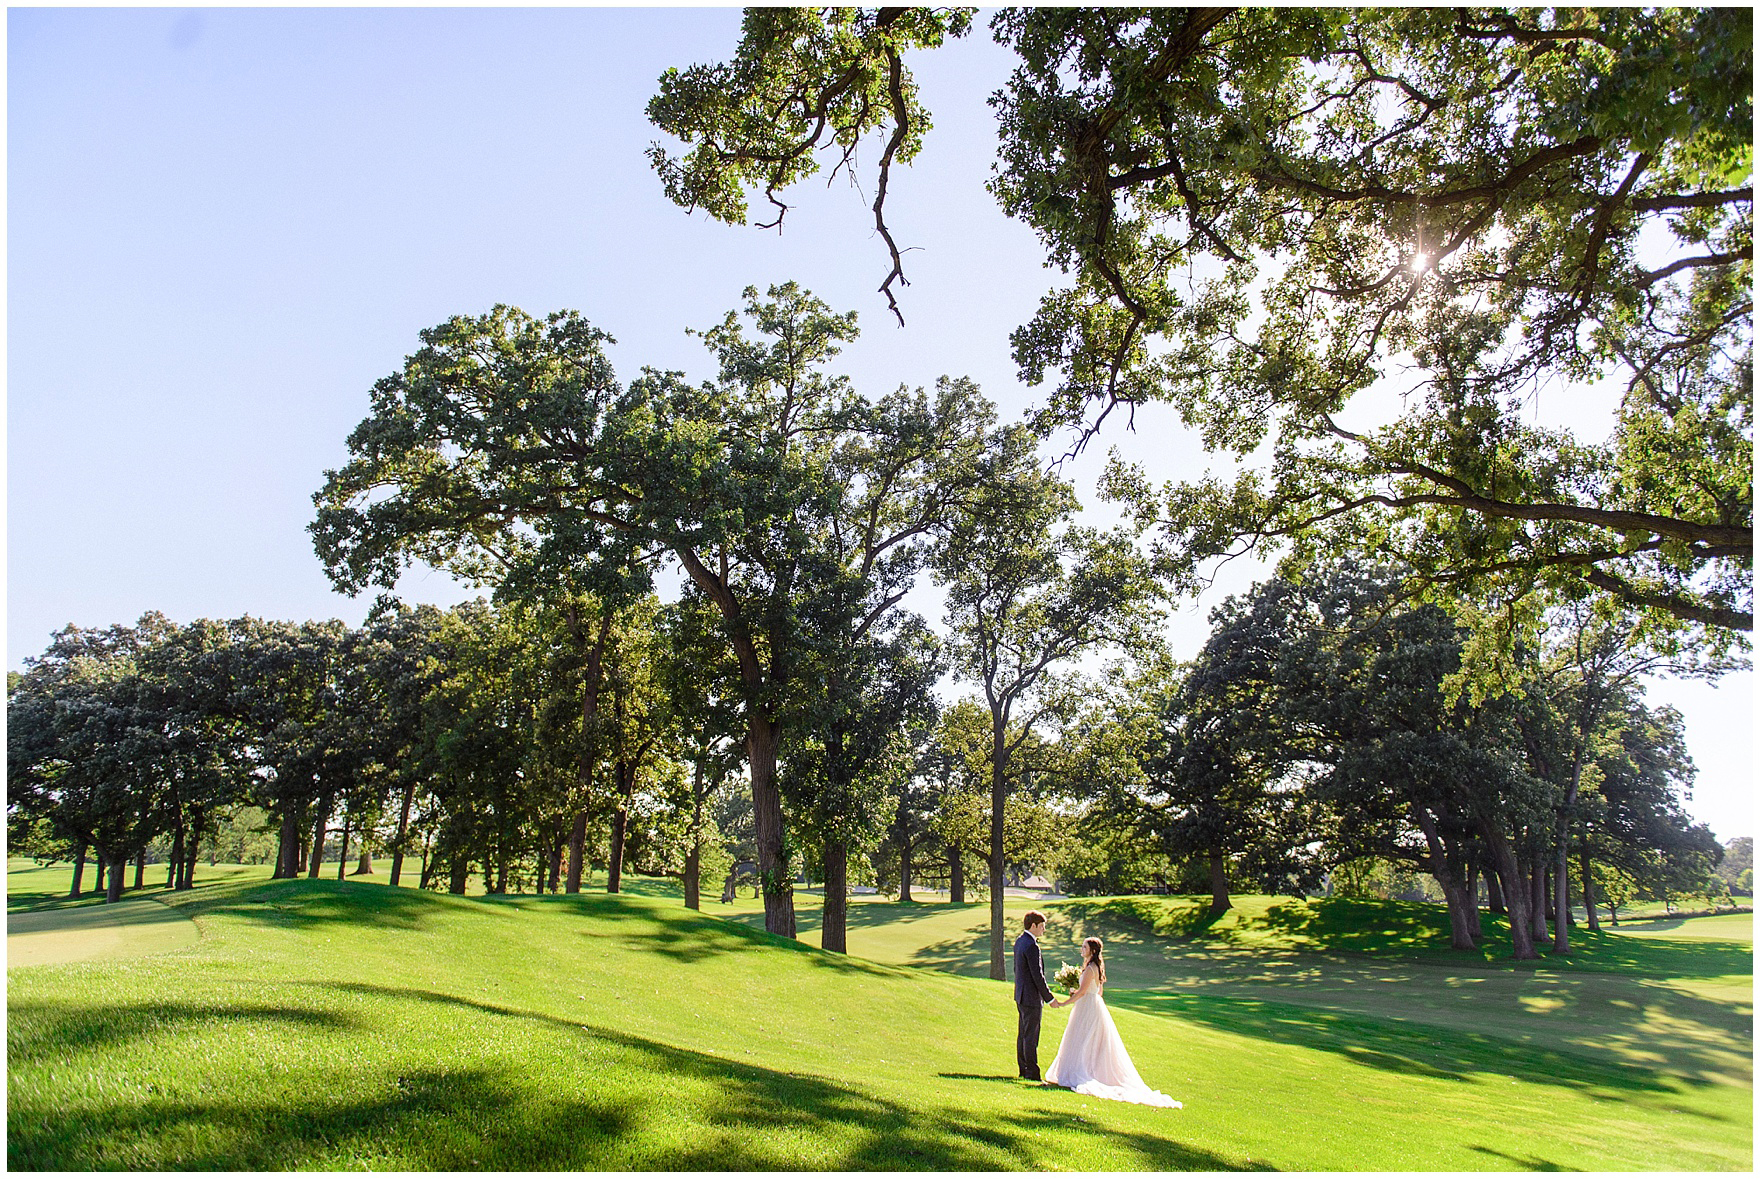 The bride and groom stand hand in hand on the golf course during a Butterfield Country Club wedding.